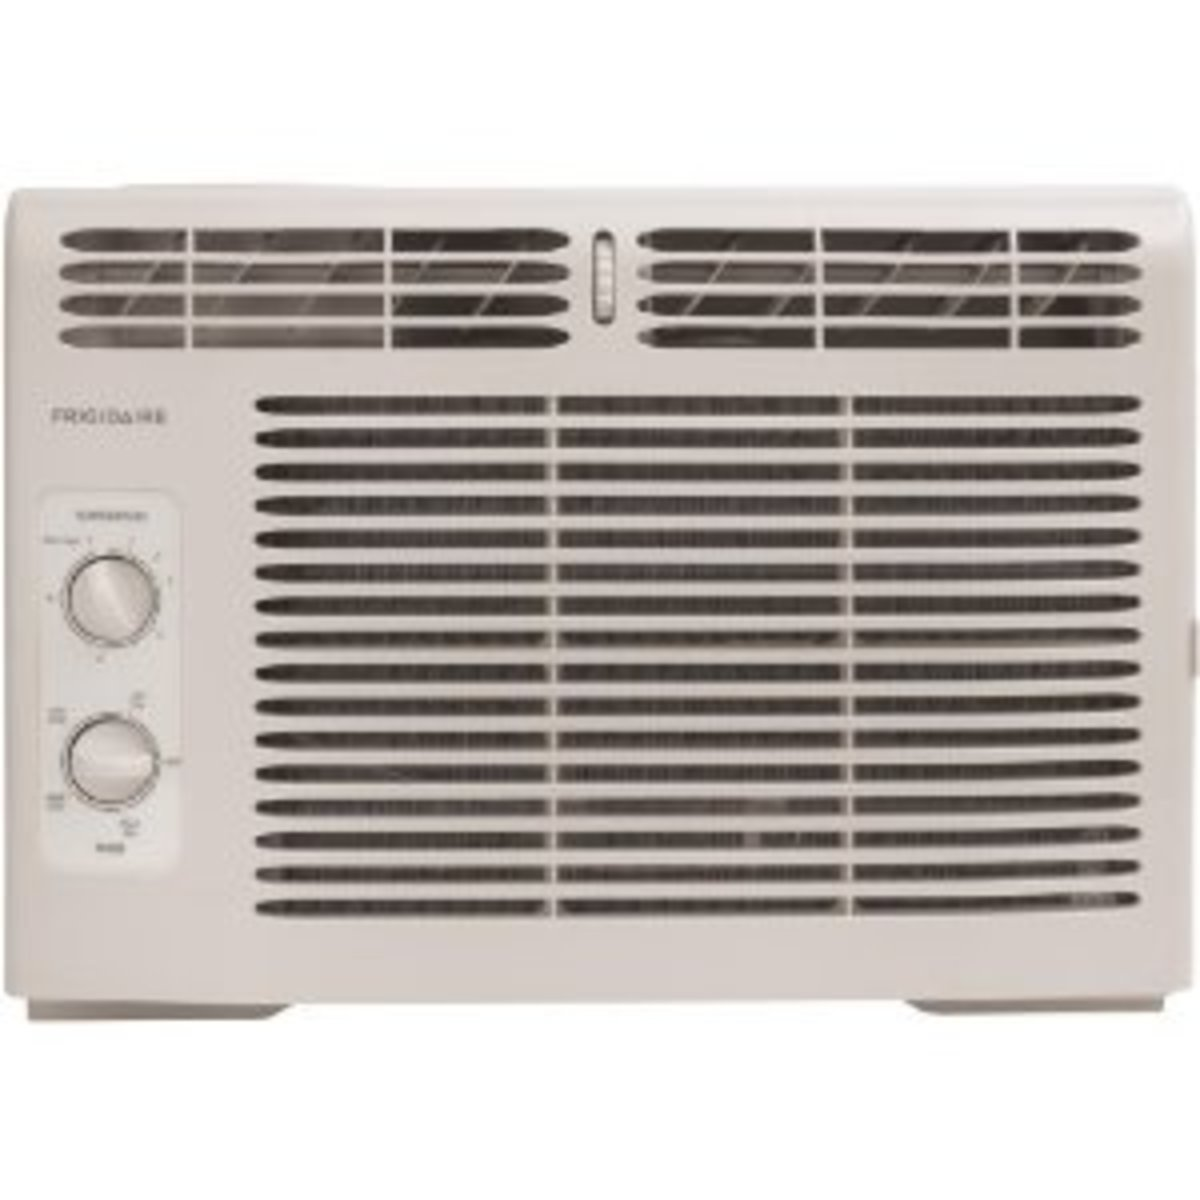 An example of a mini window air conditioner.